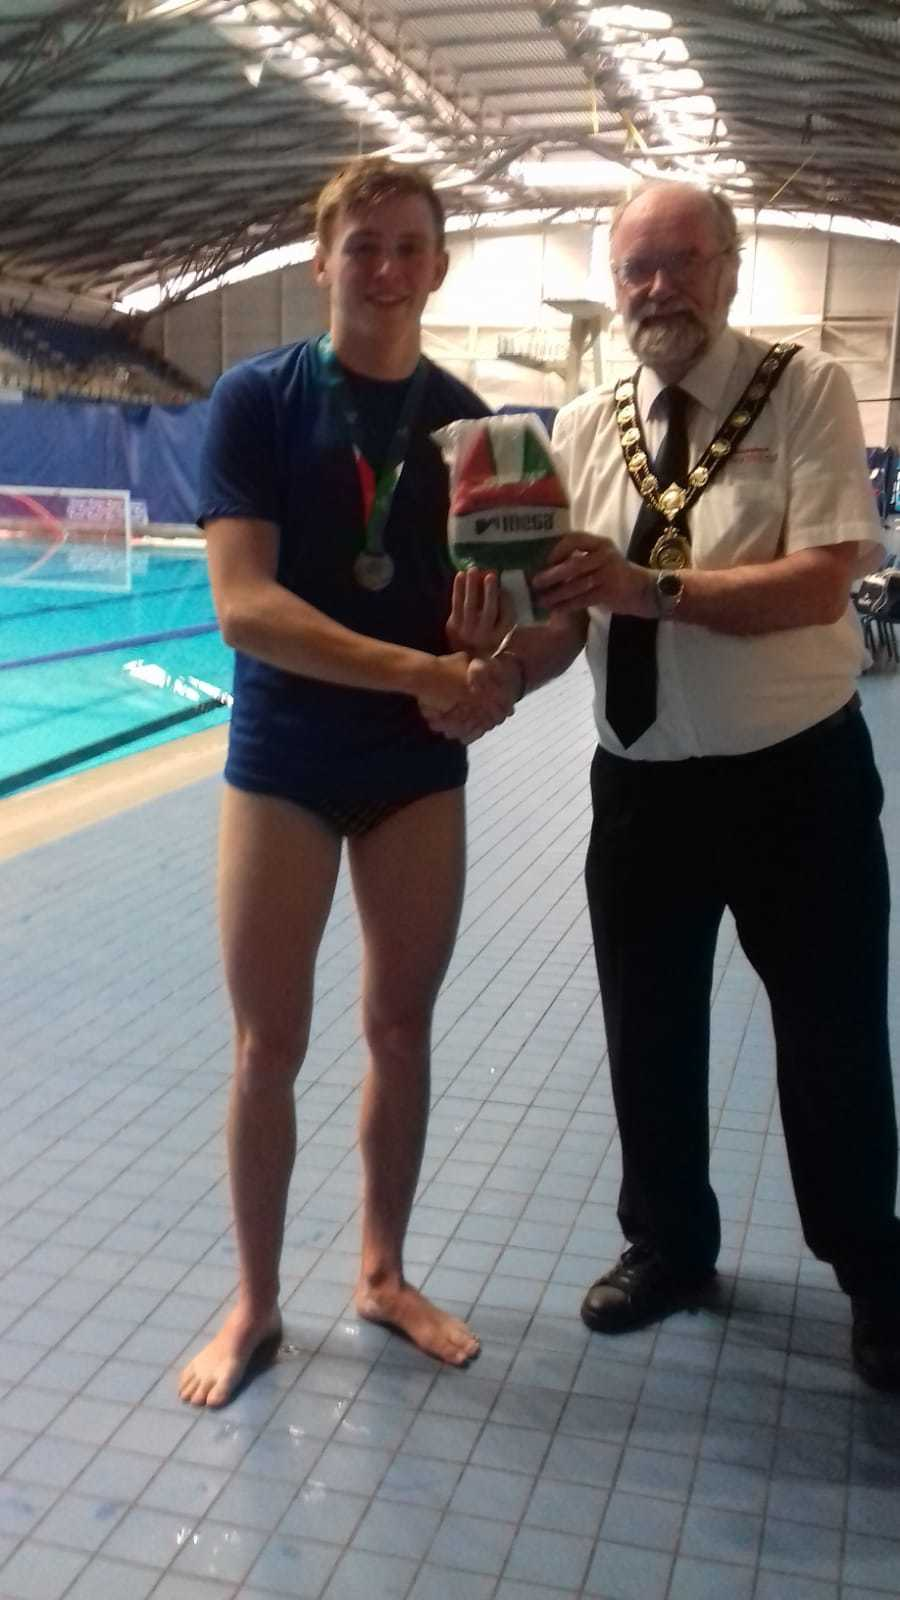 Harry Gray was voted MVP in Saltires' final victory. Photo courtesy of Dunfermline Water Polo Club.